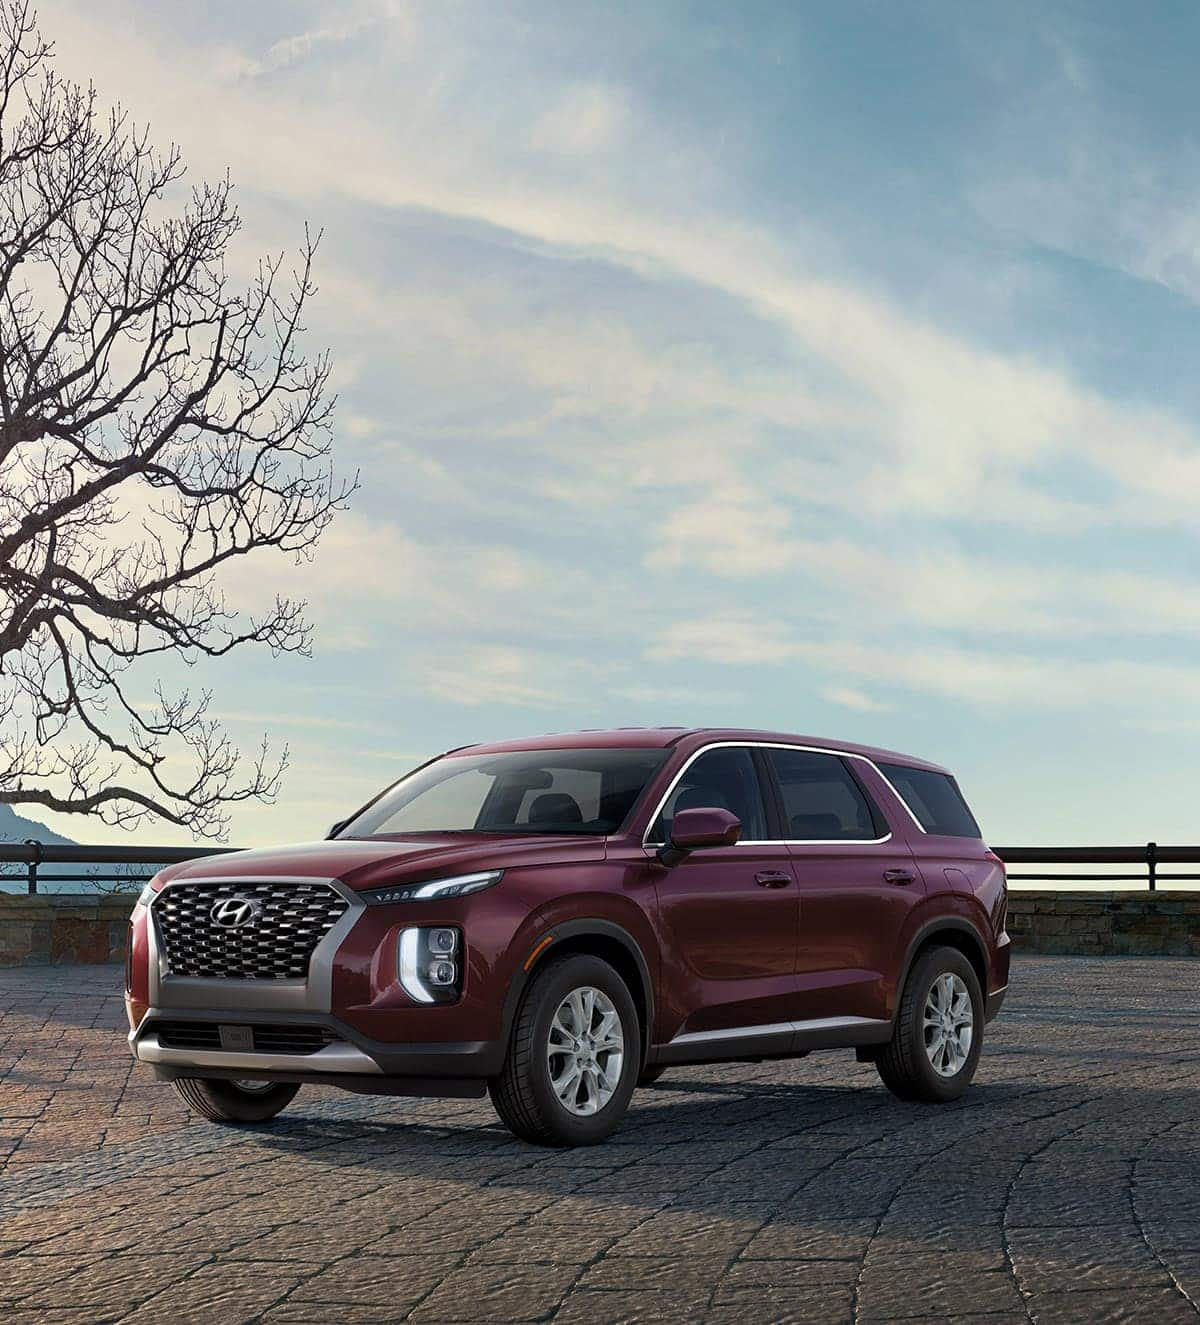 49 All New When Will The 2020 Hyundai Palisade Be Available Pictures